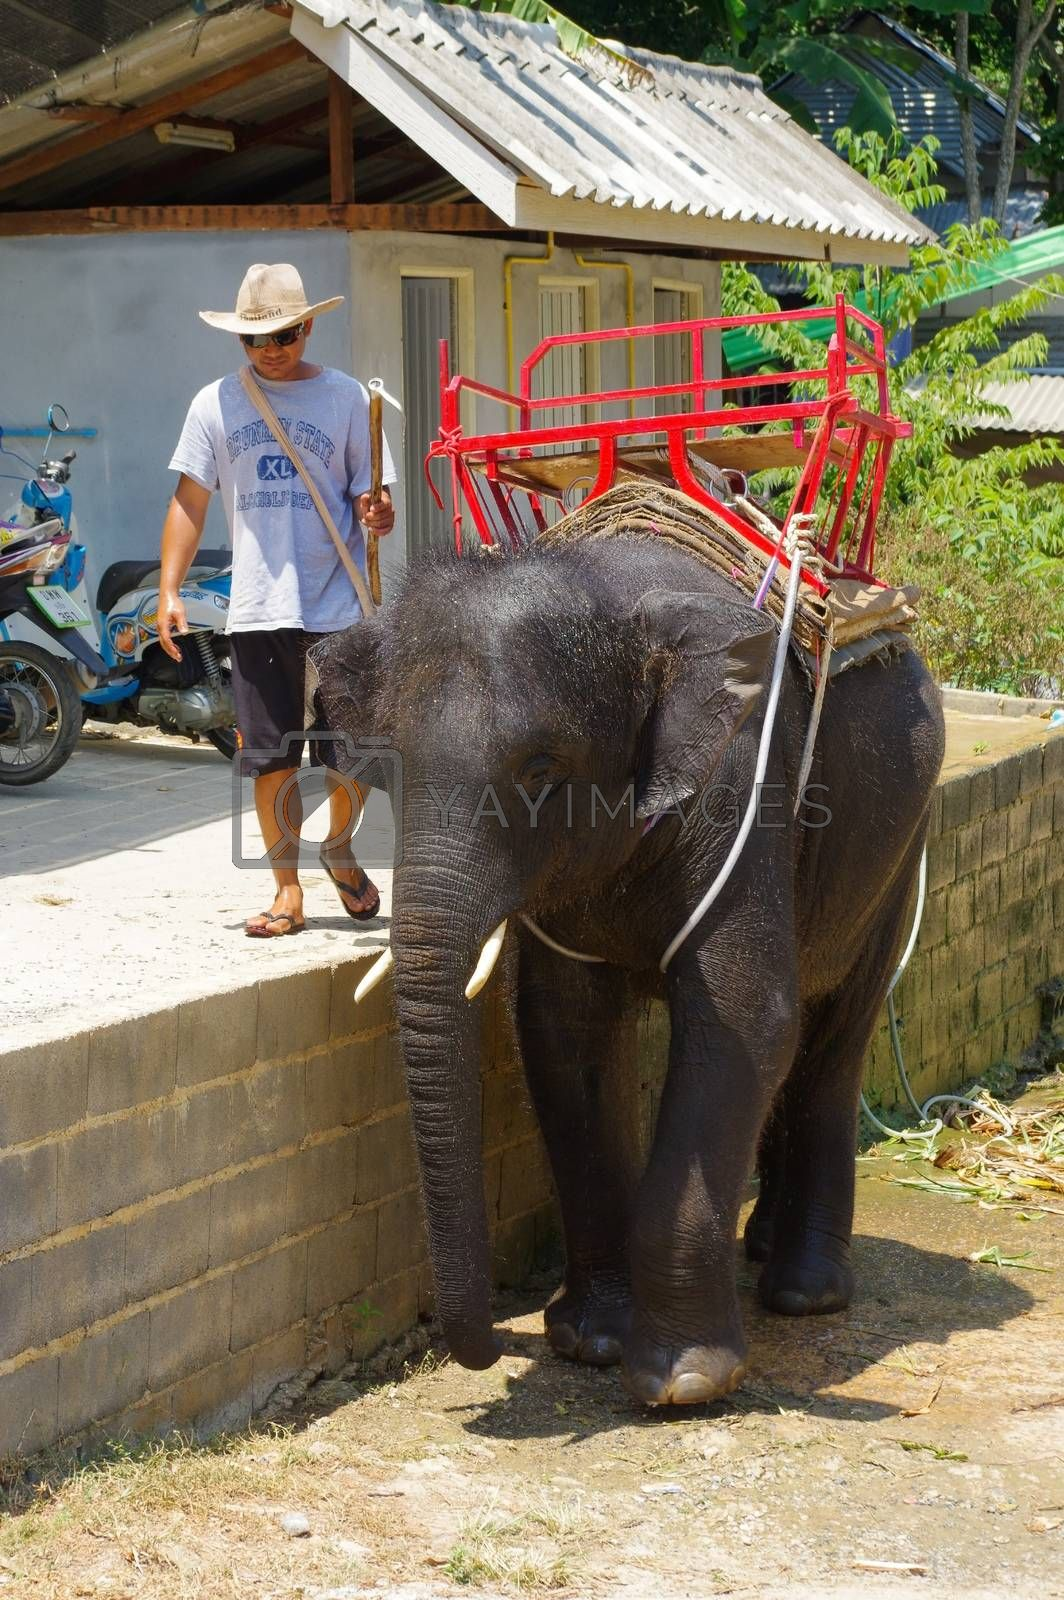 PHUKET, THAILAND - MARCH 28, 2016: baby elephant during washing at a hot day.